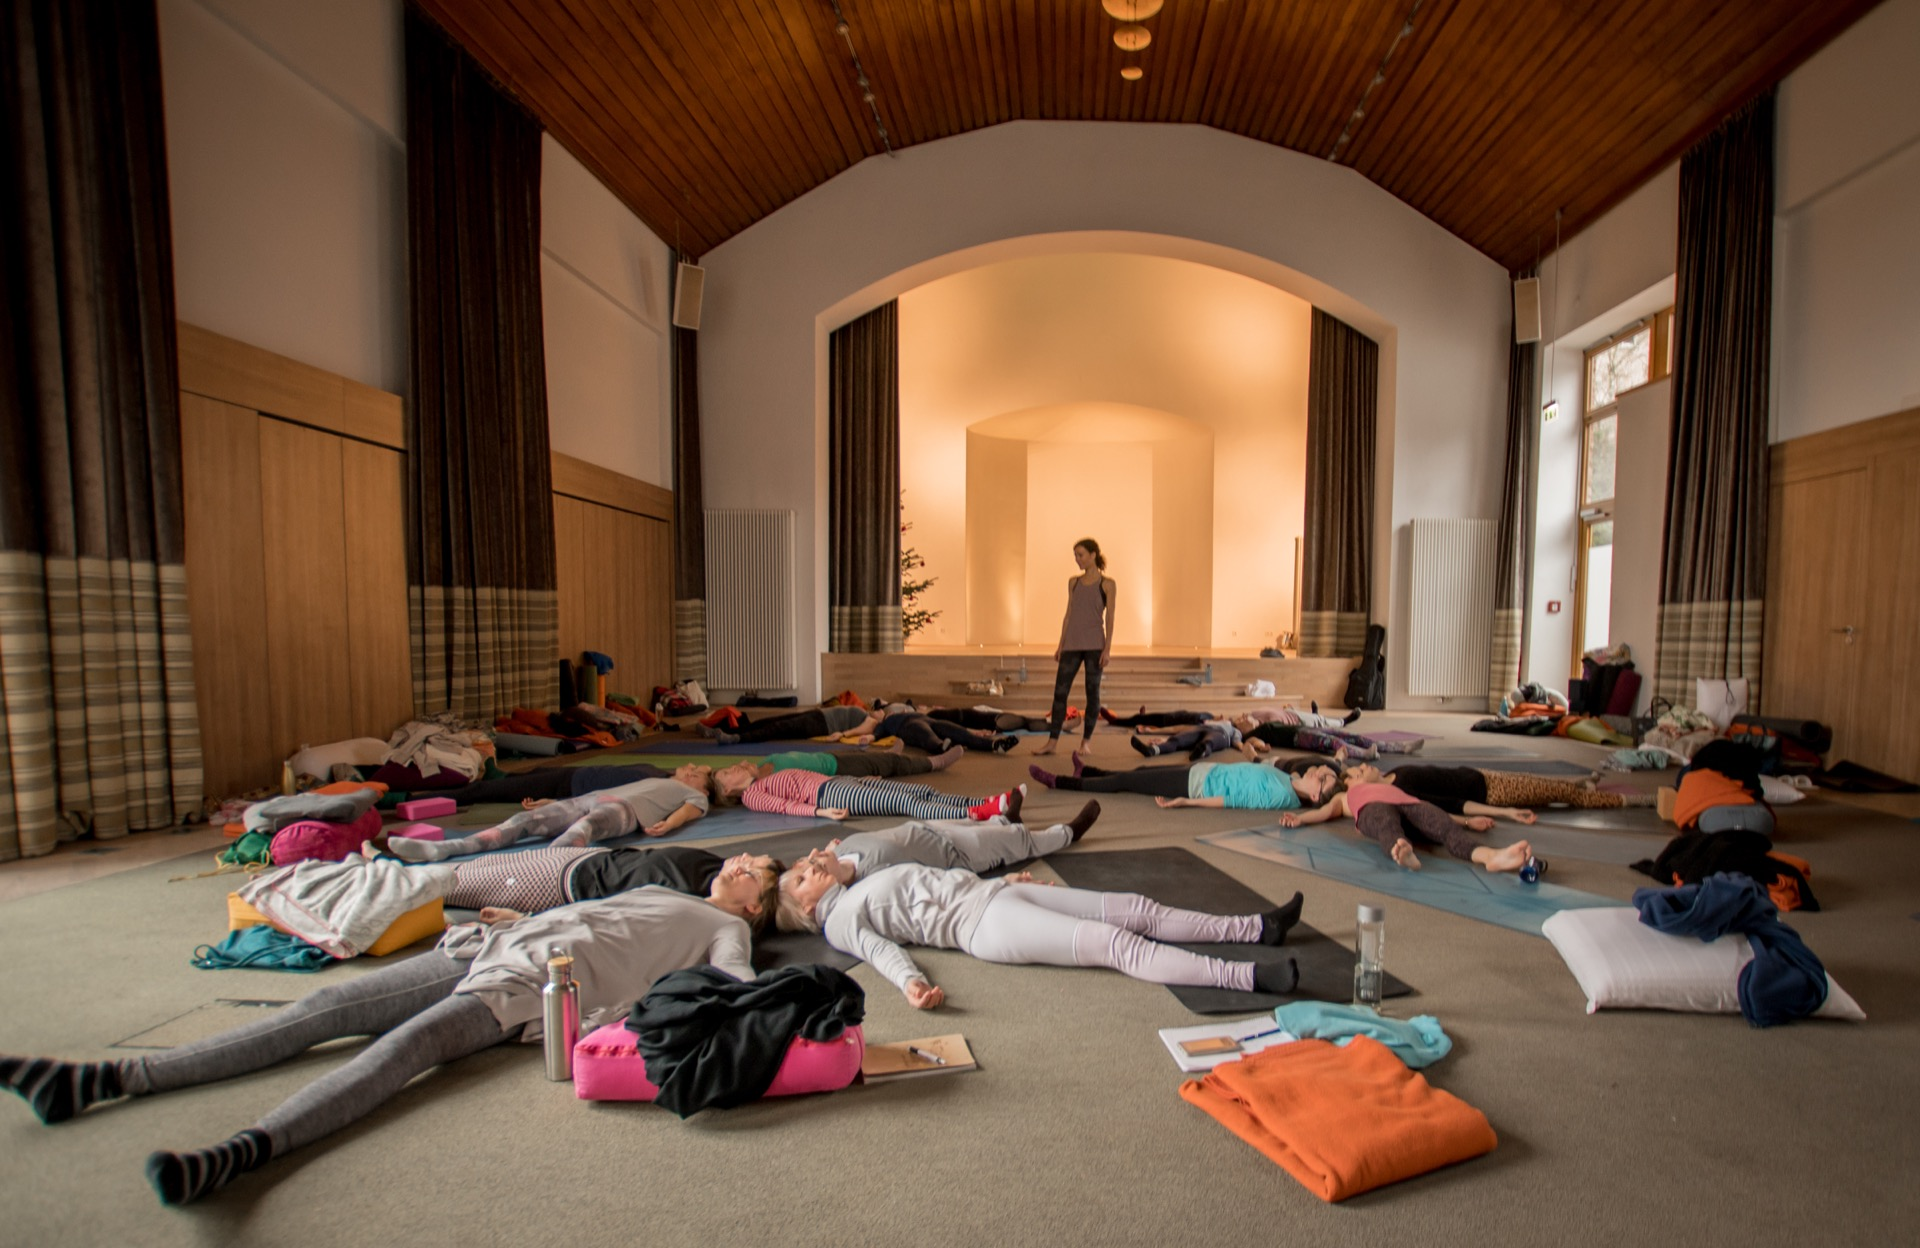 A-New-Beginning-Hie-Kim-Yoga-Retreat-Alina-Matis-Photography-007 - Hie Kim Yoga - Yoga Retreat - Yoga Workshops und Reisen